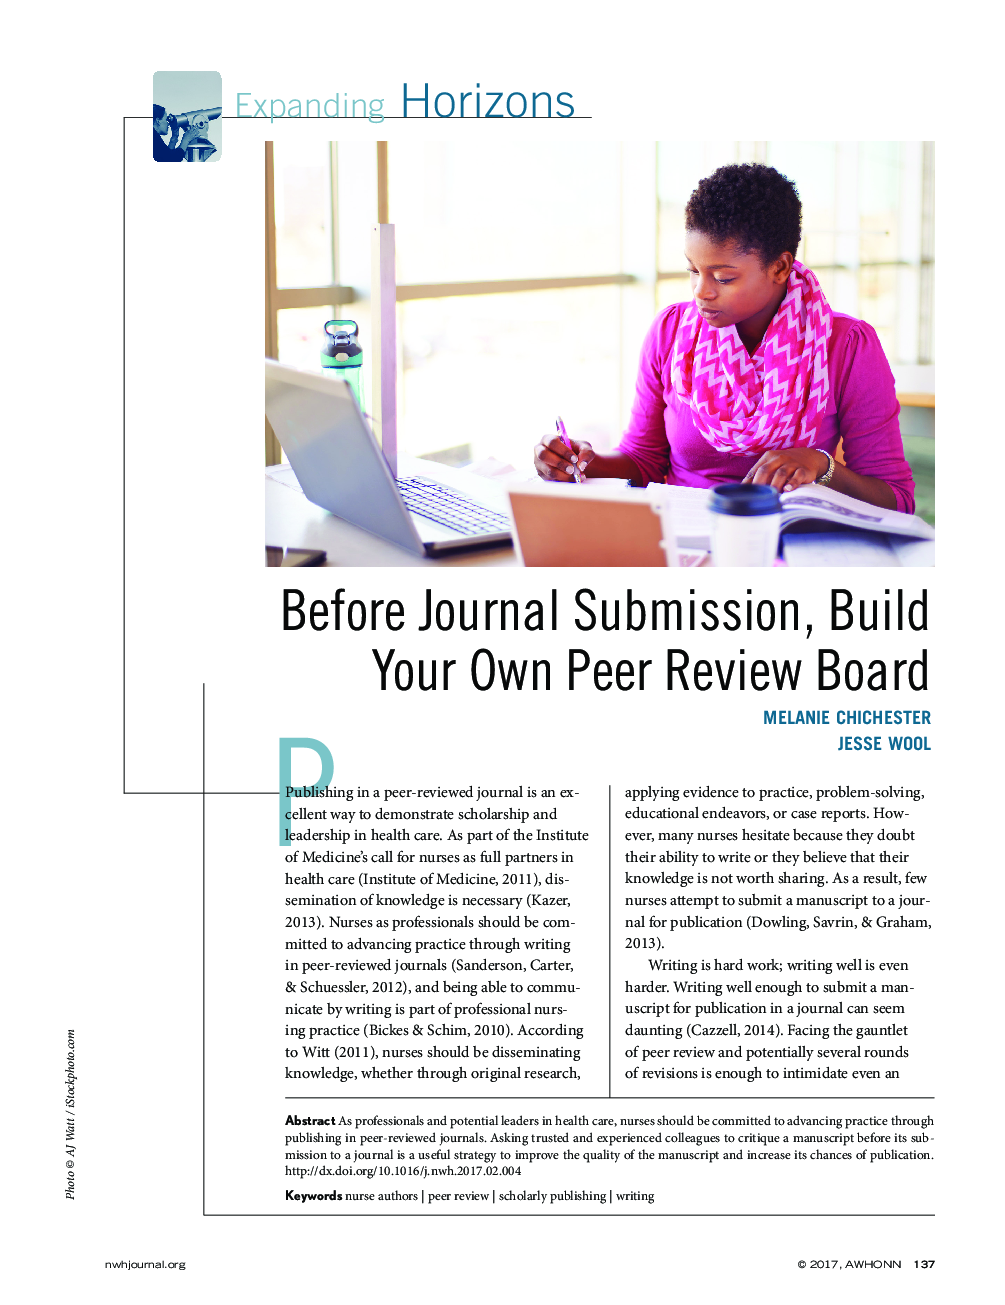 Before Journal Submission, Build Your Own Peer Review Board